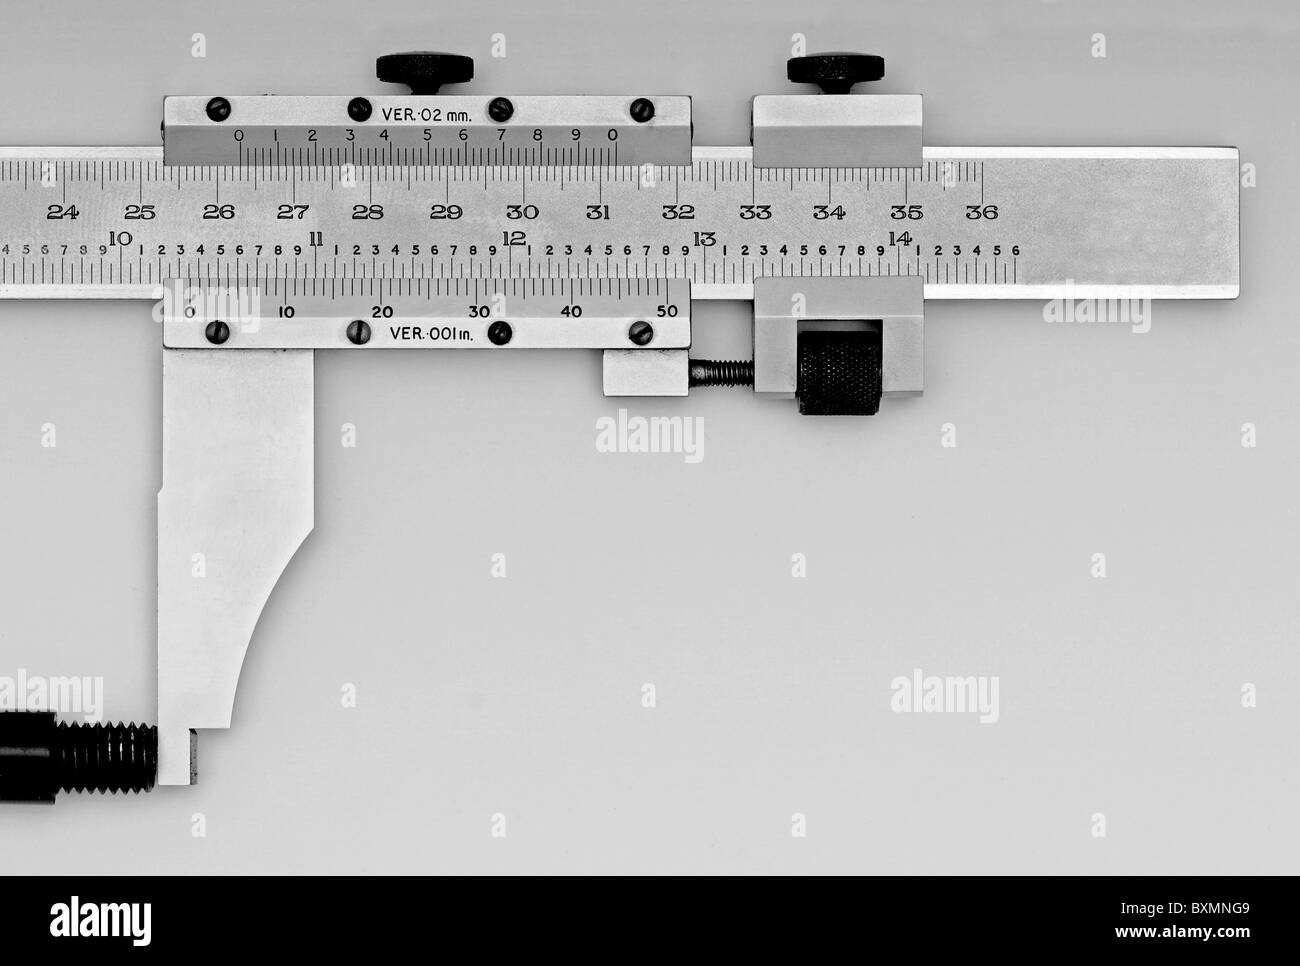 Imperial (inch) and metric scale Vernier Stock Photo